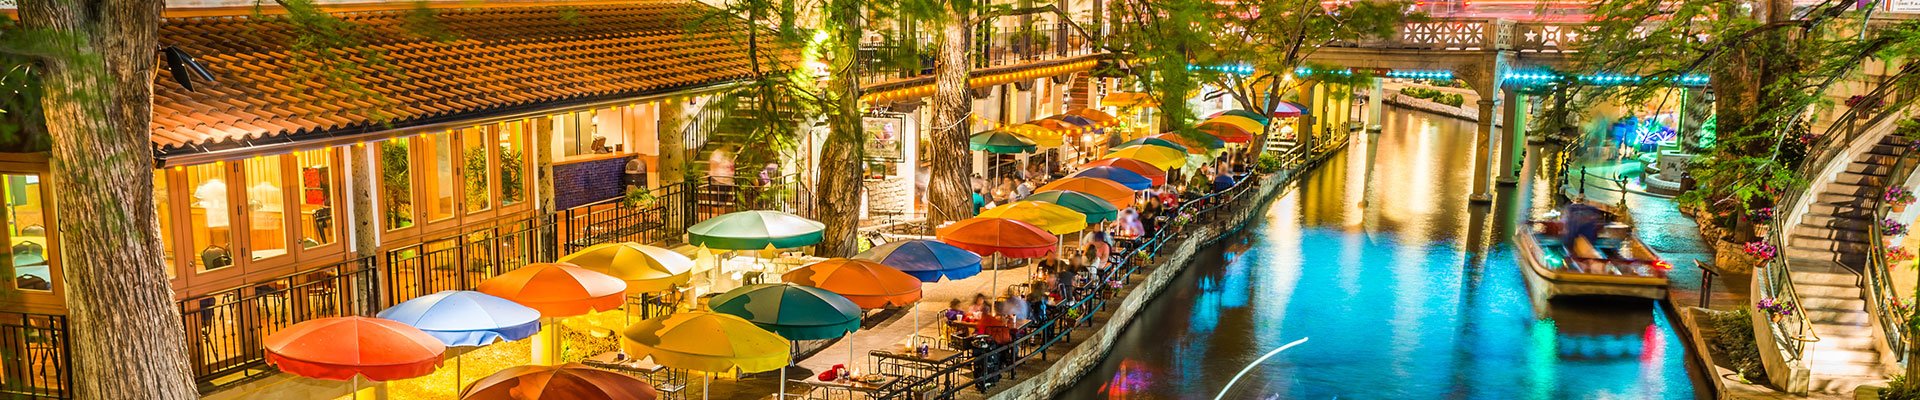 Fantasy RV Tours: 7 Day San Antonio Fiesta (07USAP-041821)